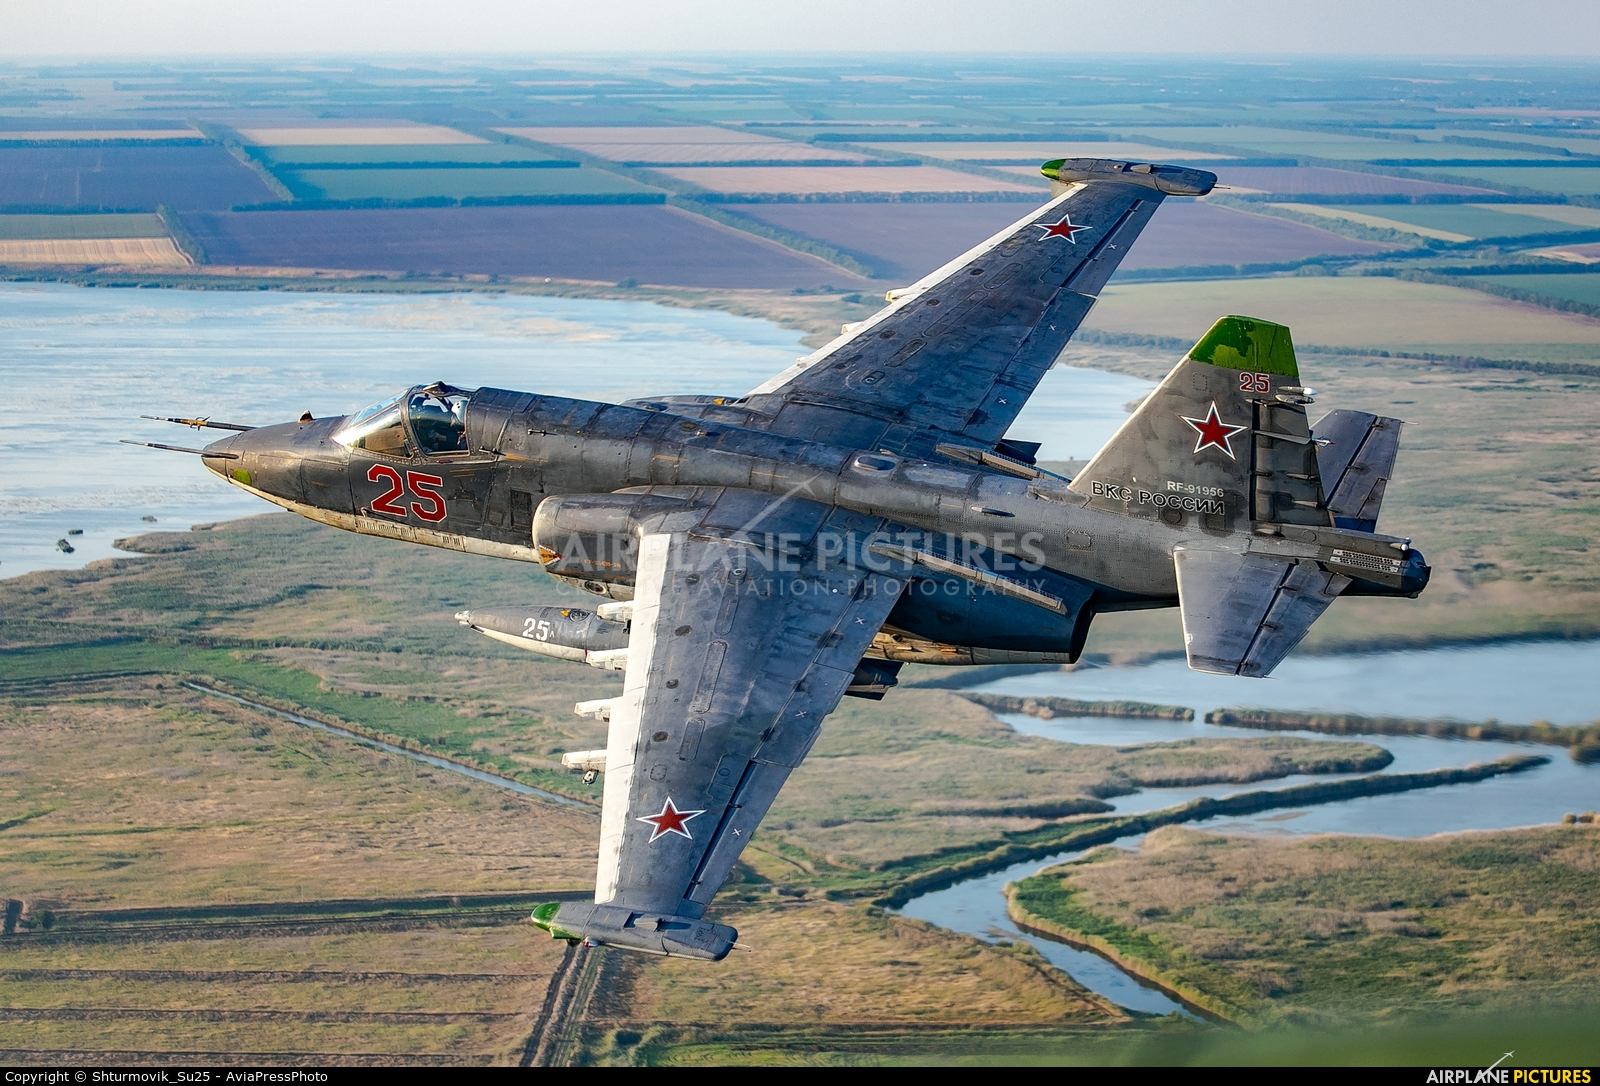 Russia - Air Force RF-91956 aircraft at Undisclosed Location